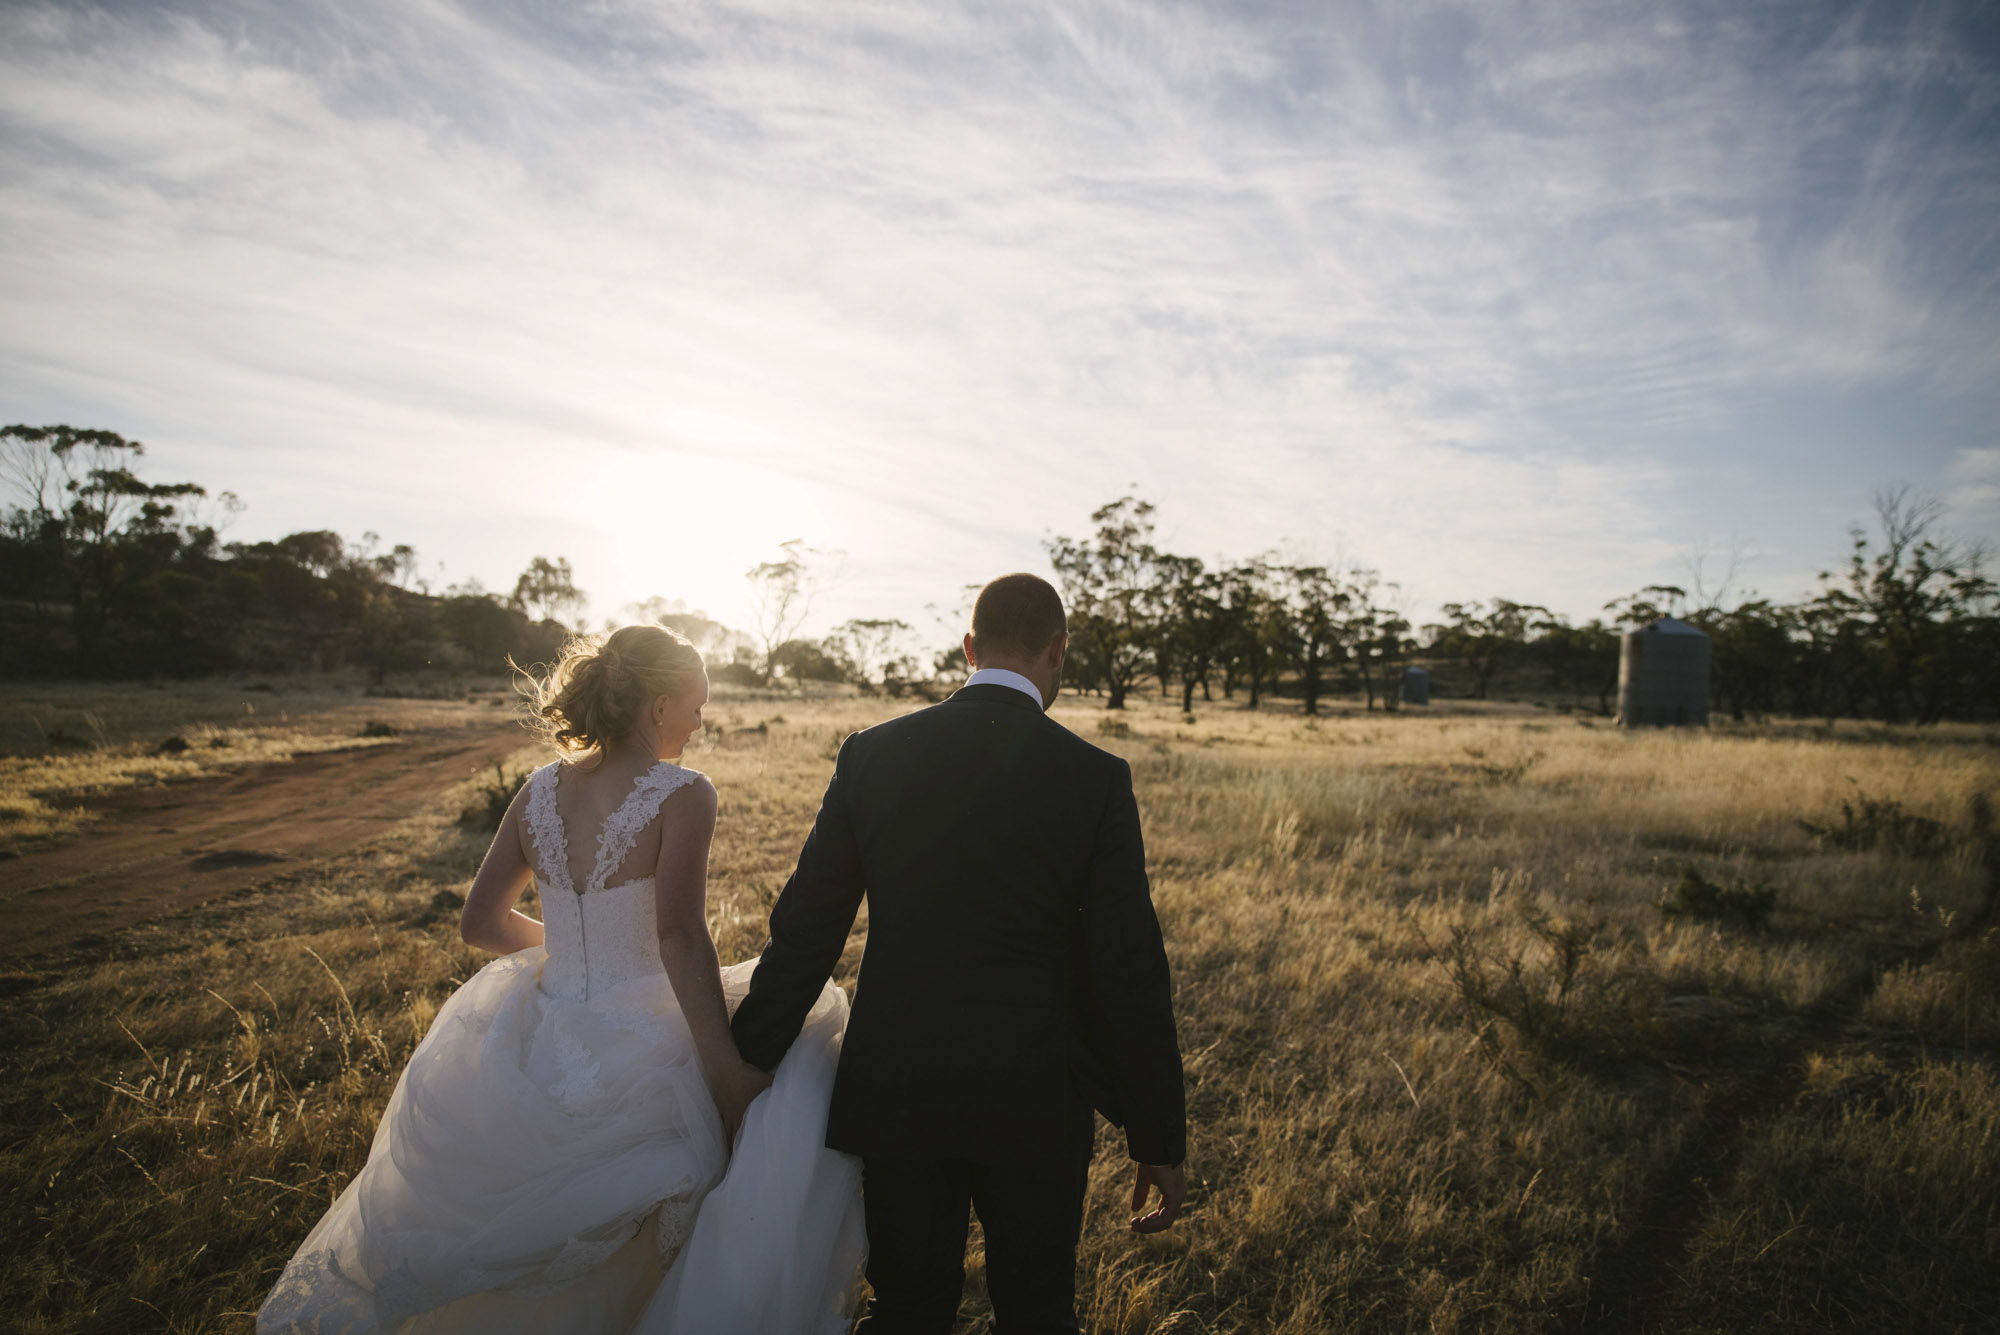 Angie-Roe-Photography-Wedding-Perth-Northam-Wheatbelt-Country-Rural (48).jpg